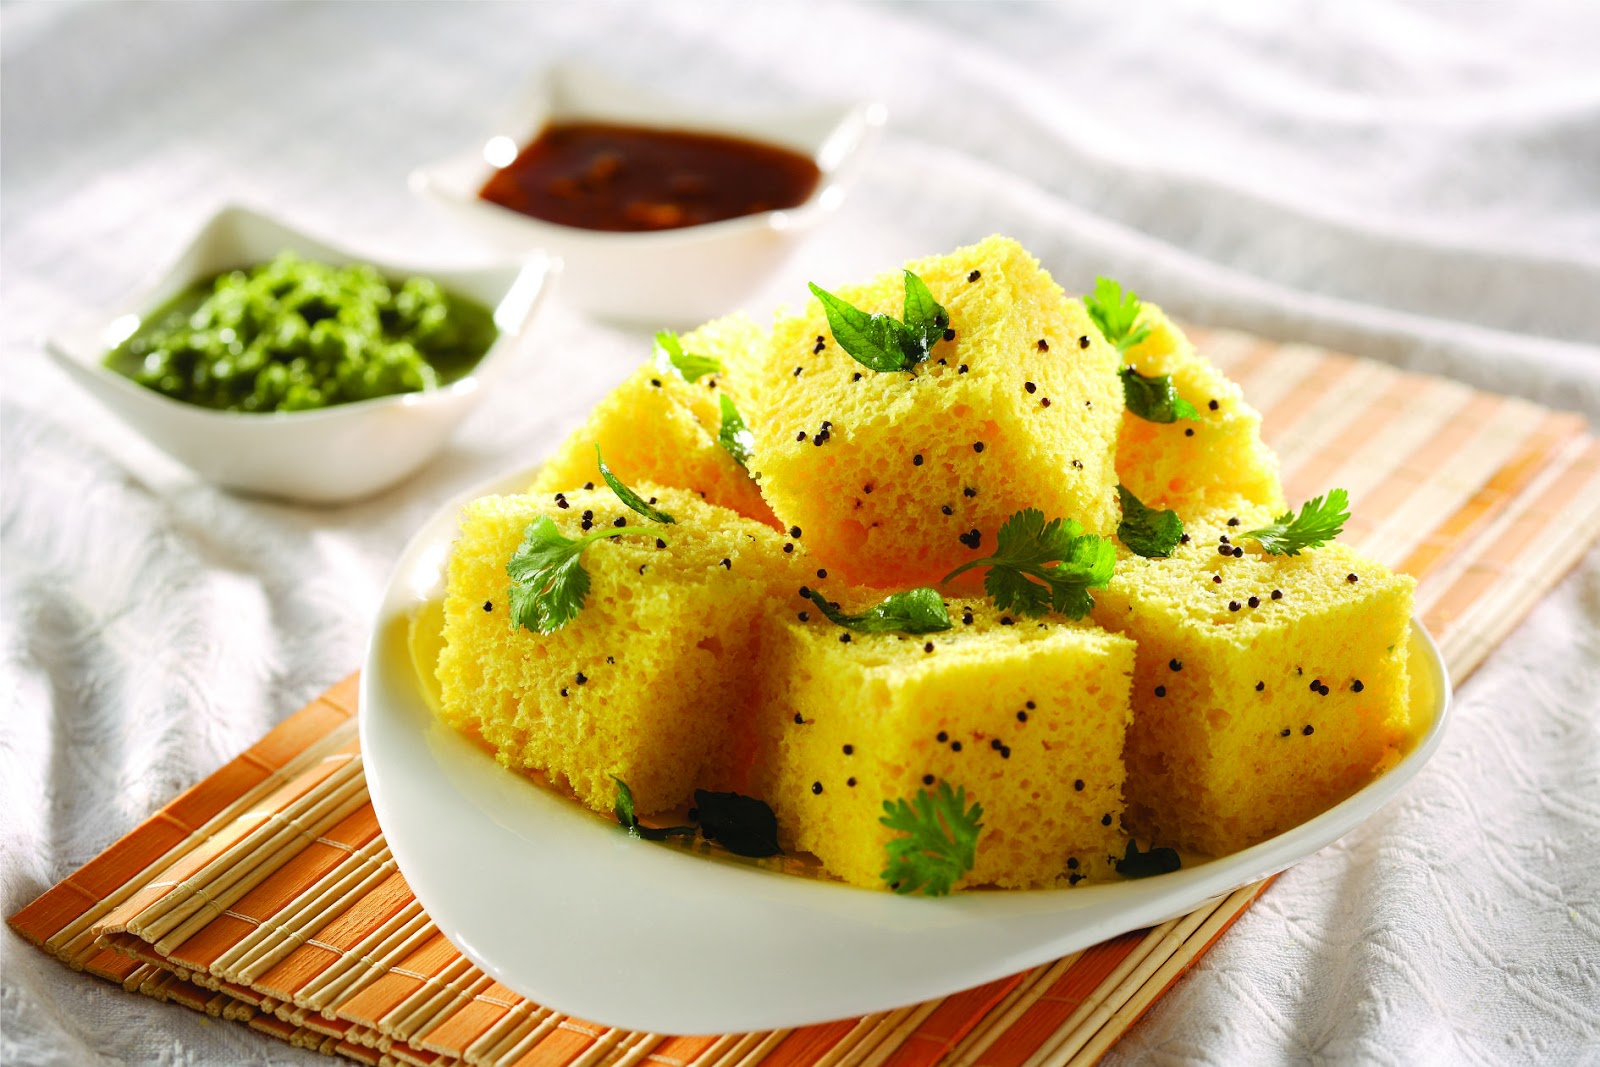 Dhokla is a vegetarian made from a fermented batter of rice and split chickpeas. It is served as a snack with tangy chutneys.